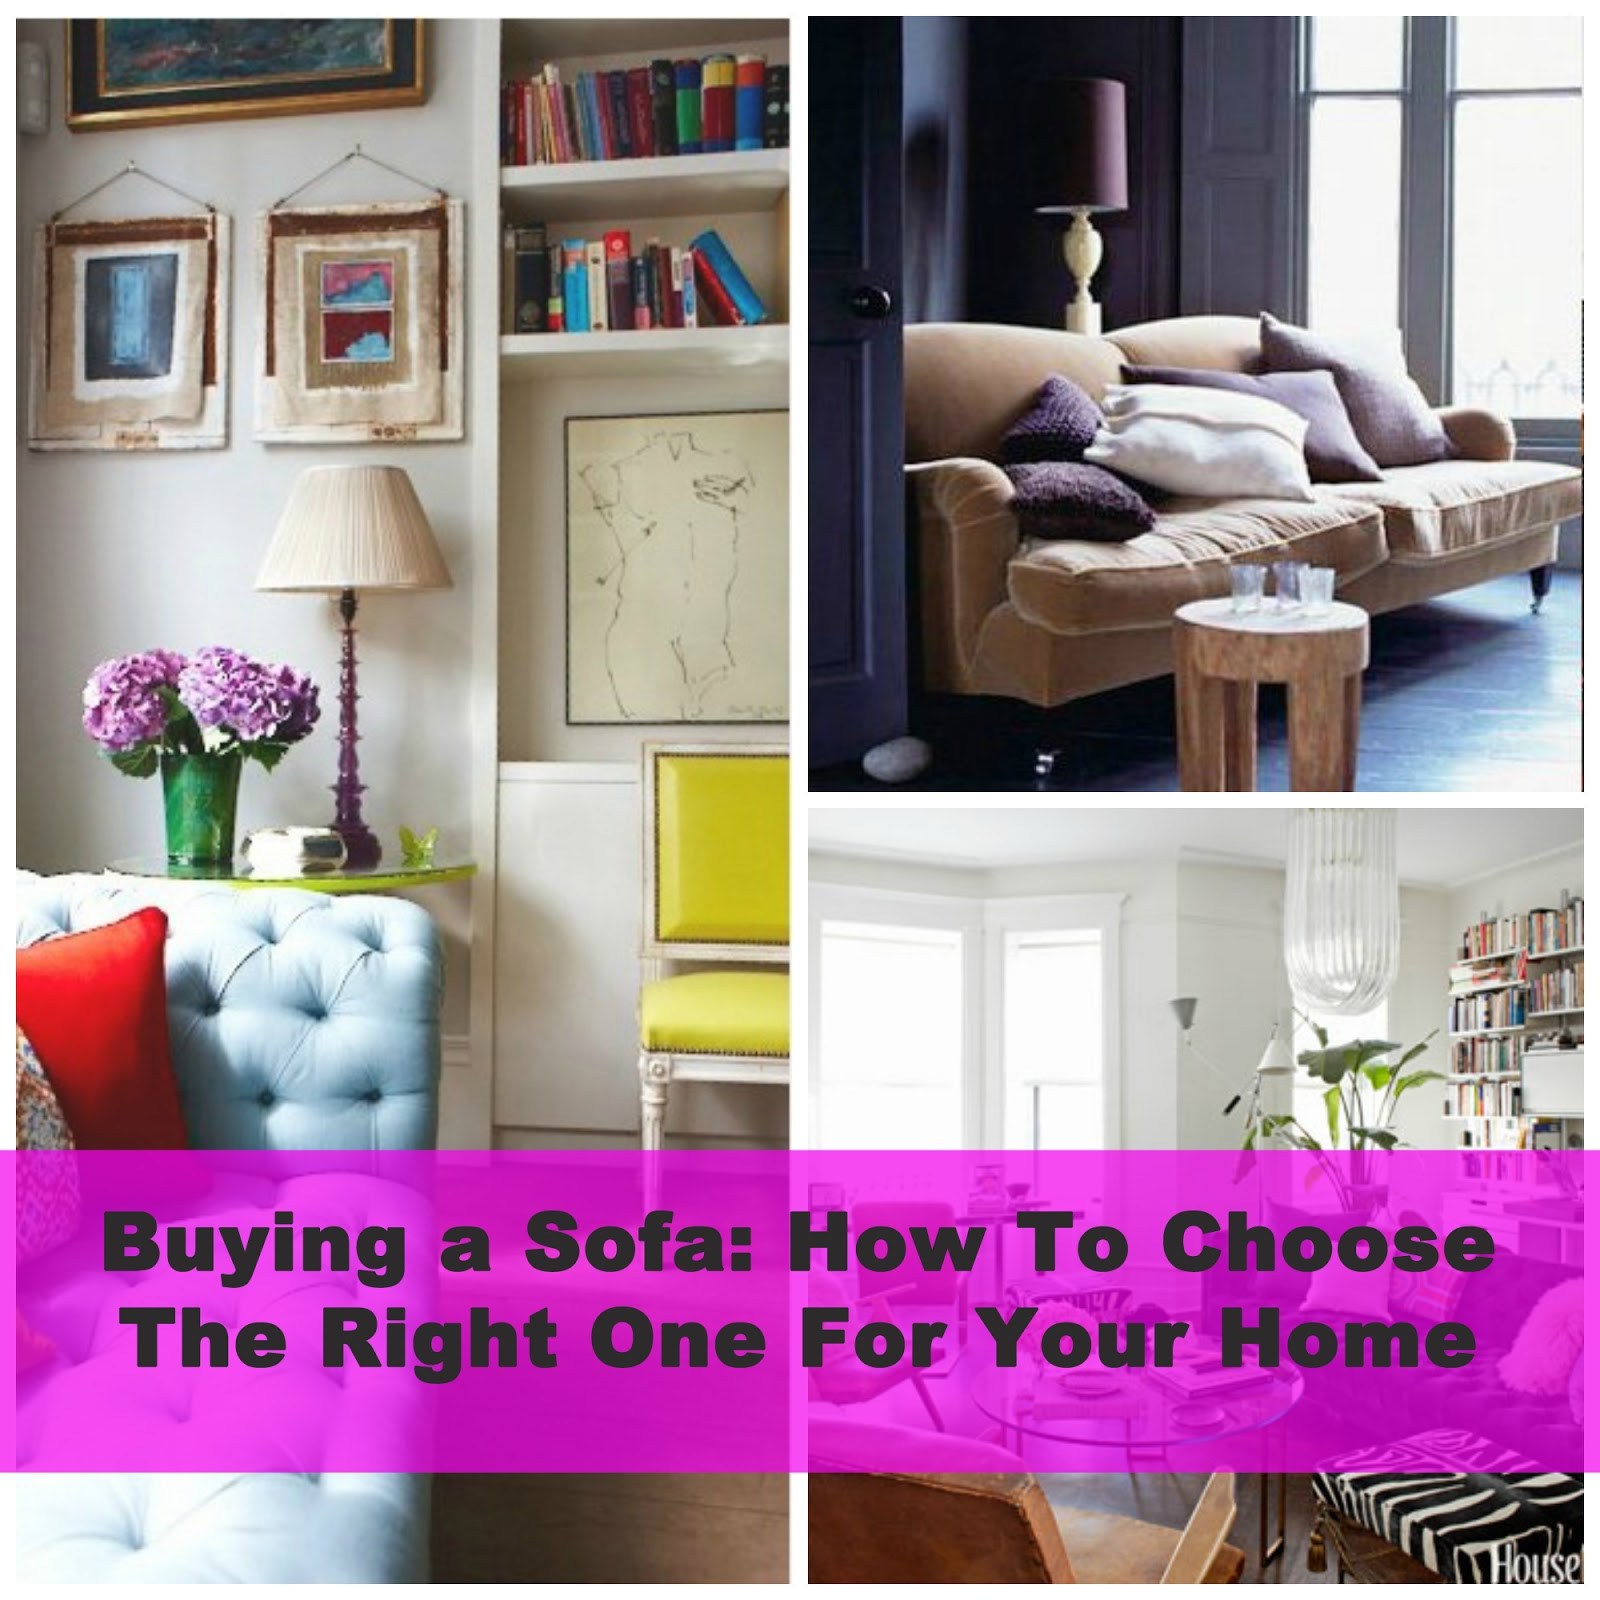 How To Pick A Sofa Inspiration With How to Choose Pictures for Your Home Image